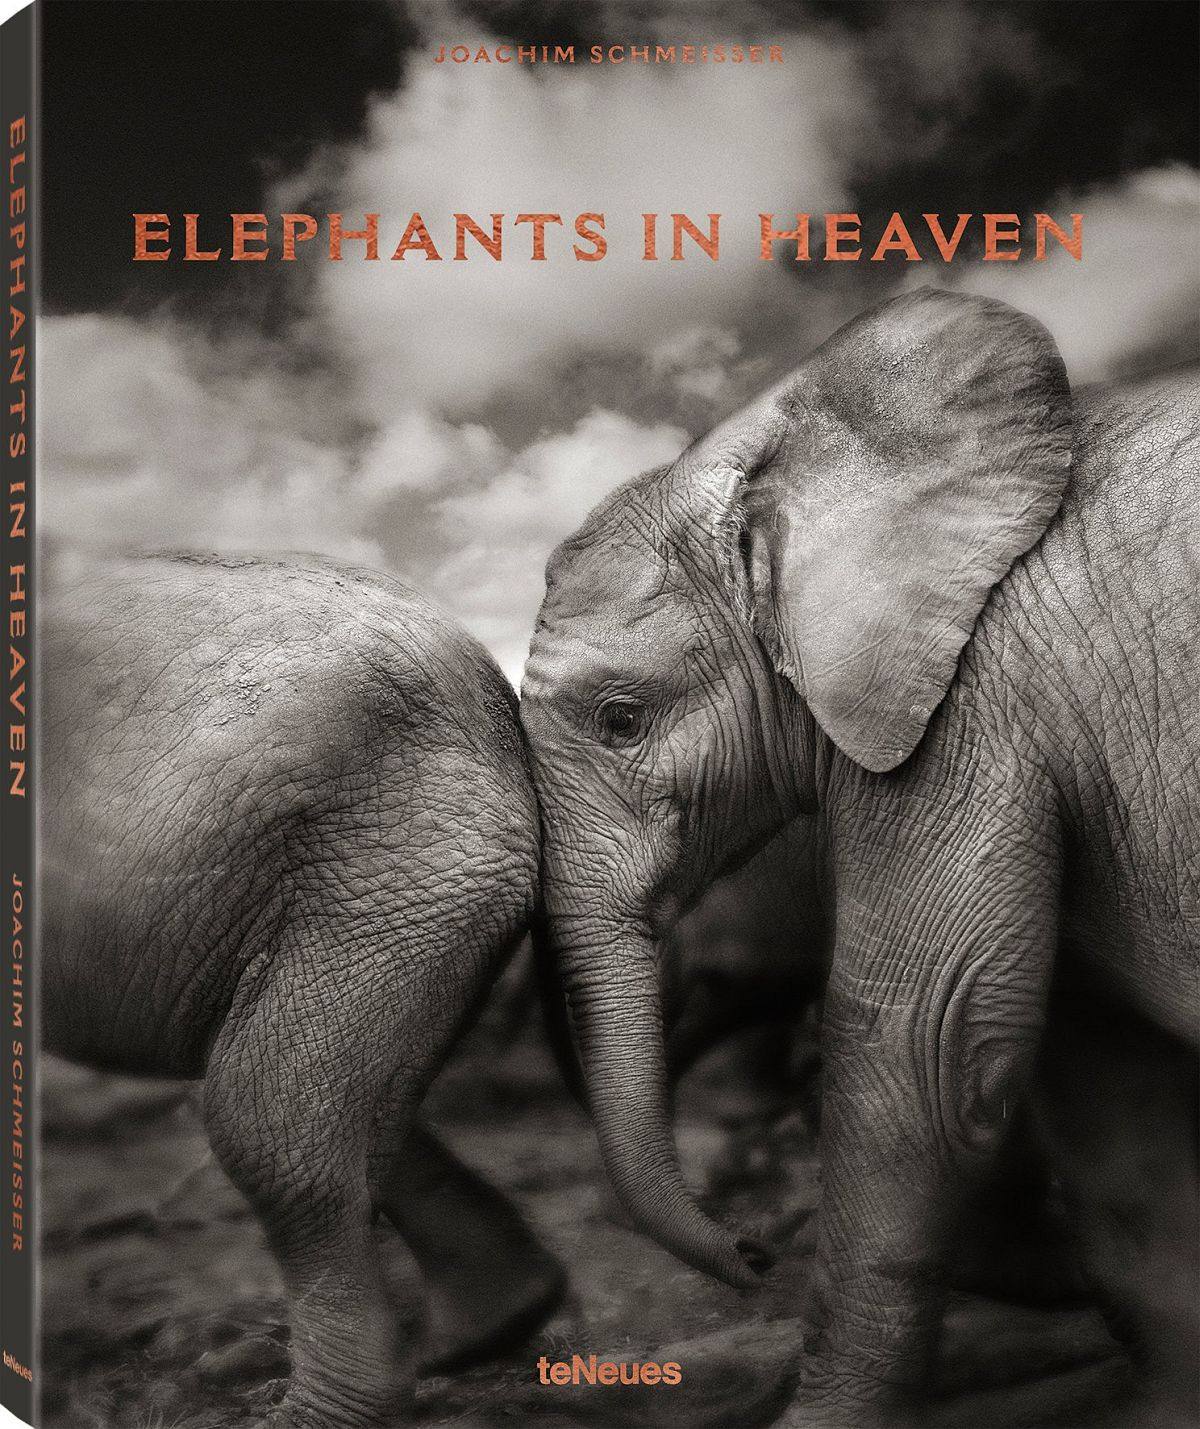 © Elephants in Heaven by Joachim Schmeisser, published by teNeues, www.teneues.com, Suguta, Kenya 2009, Photo © 2017 Joachim Schmeisser.